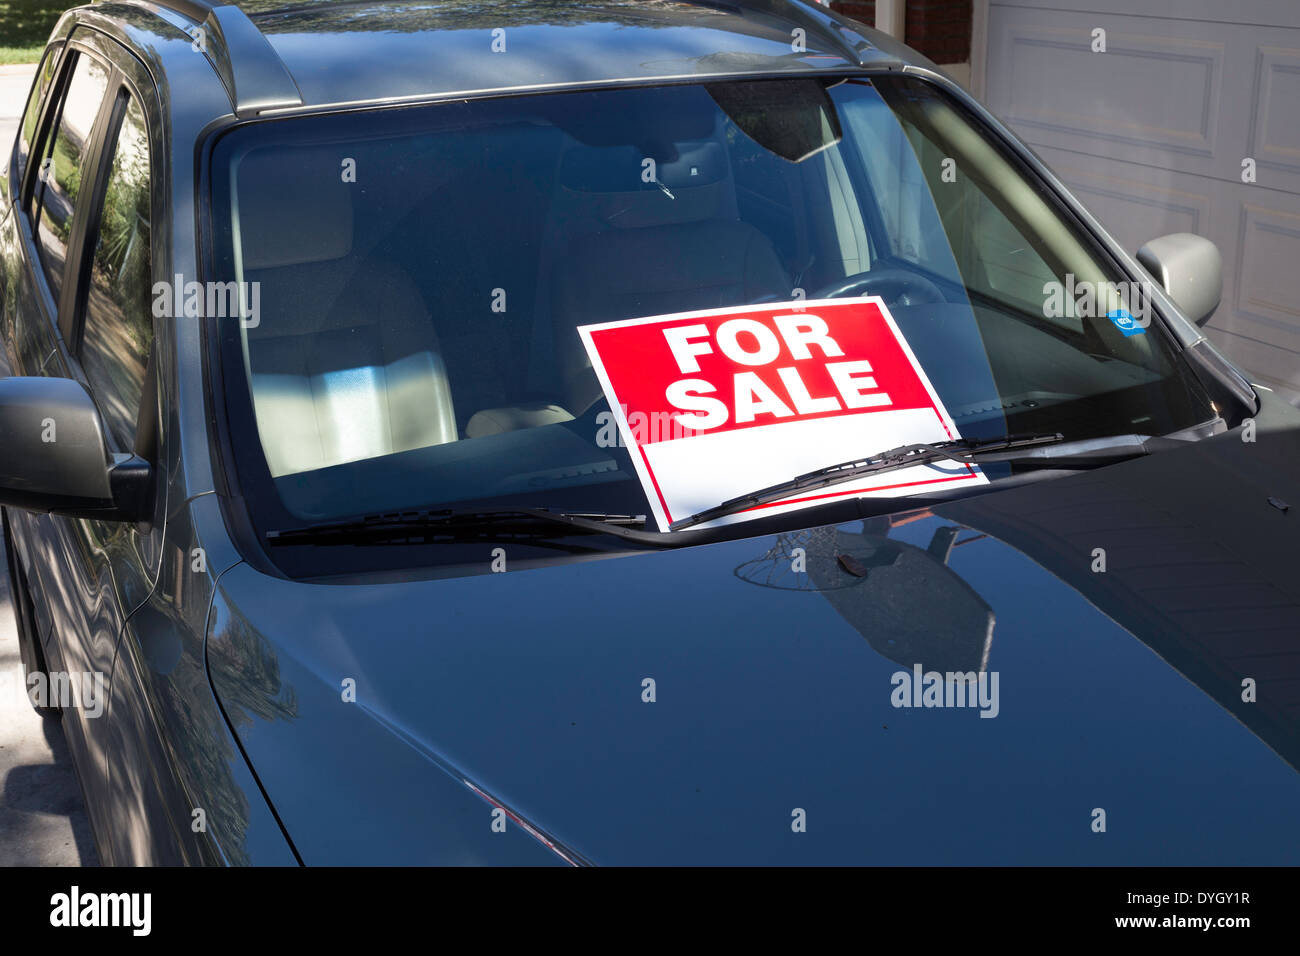 Used Car Sale Owner Usa Stock Photos & Used Car Sale Owner Usa Stock ...